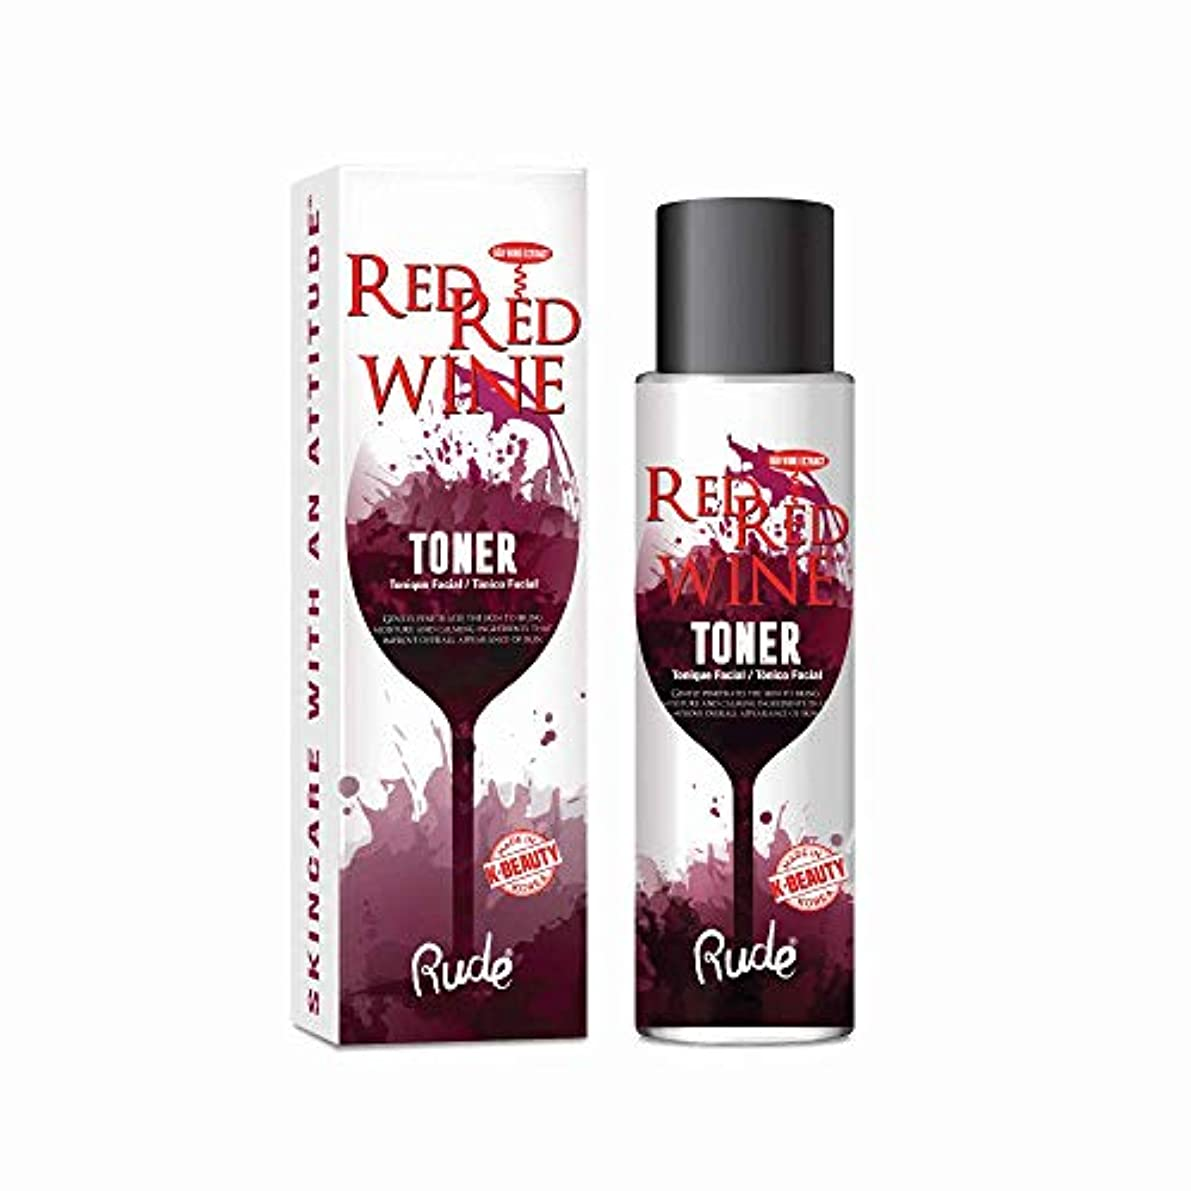 RUDE Red Red Wine Toner (並行輸入品)